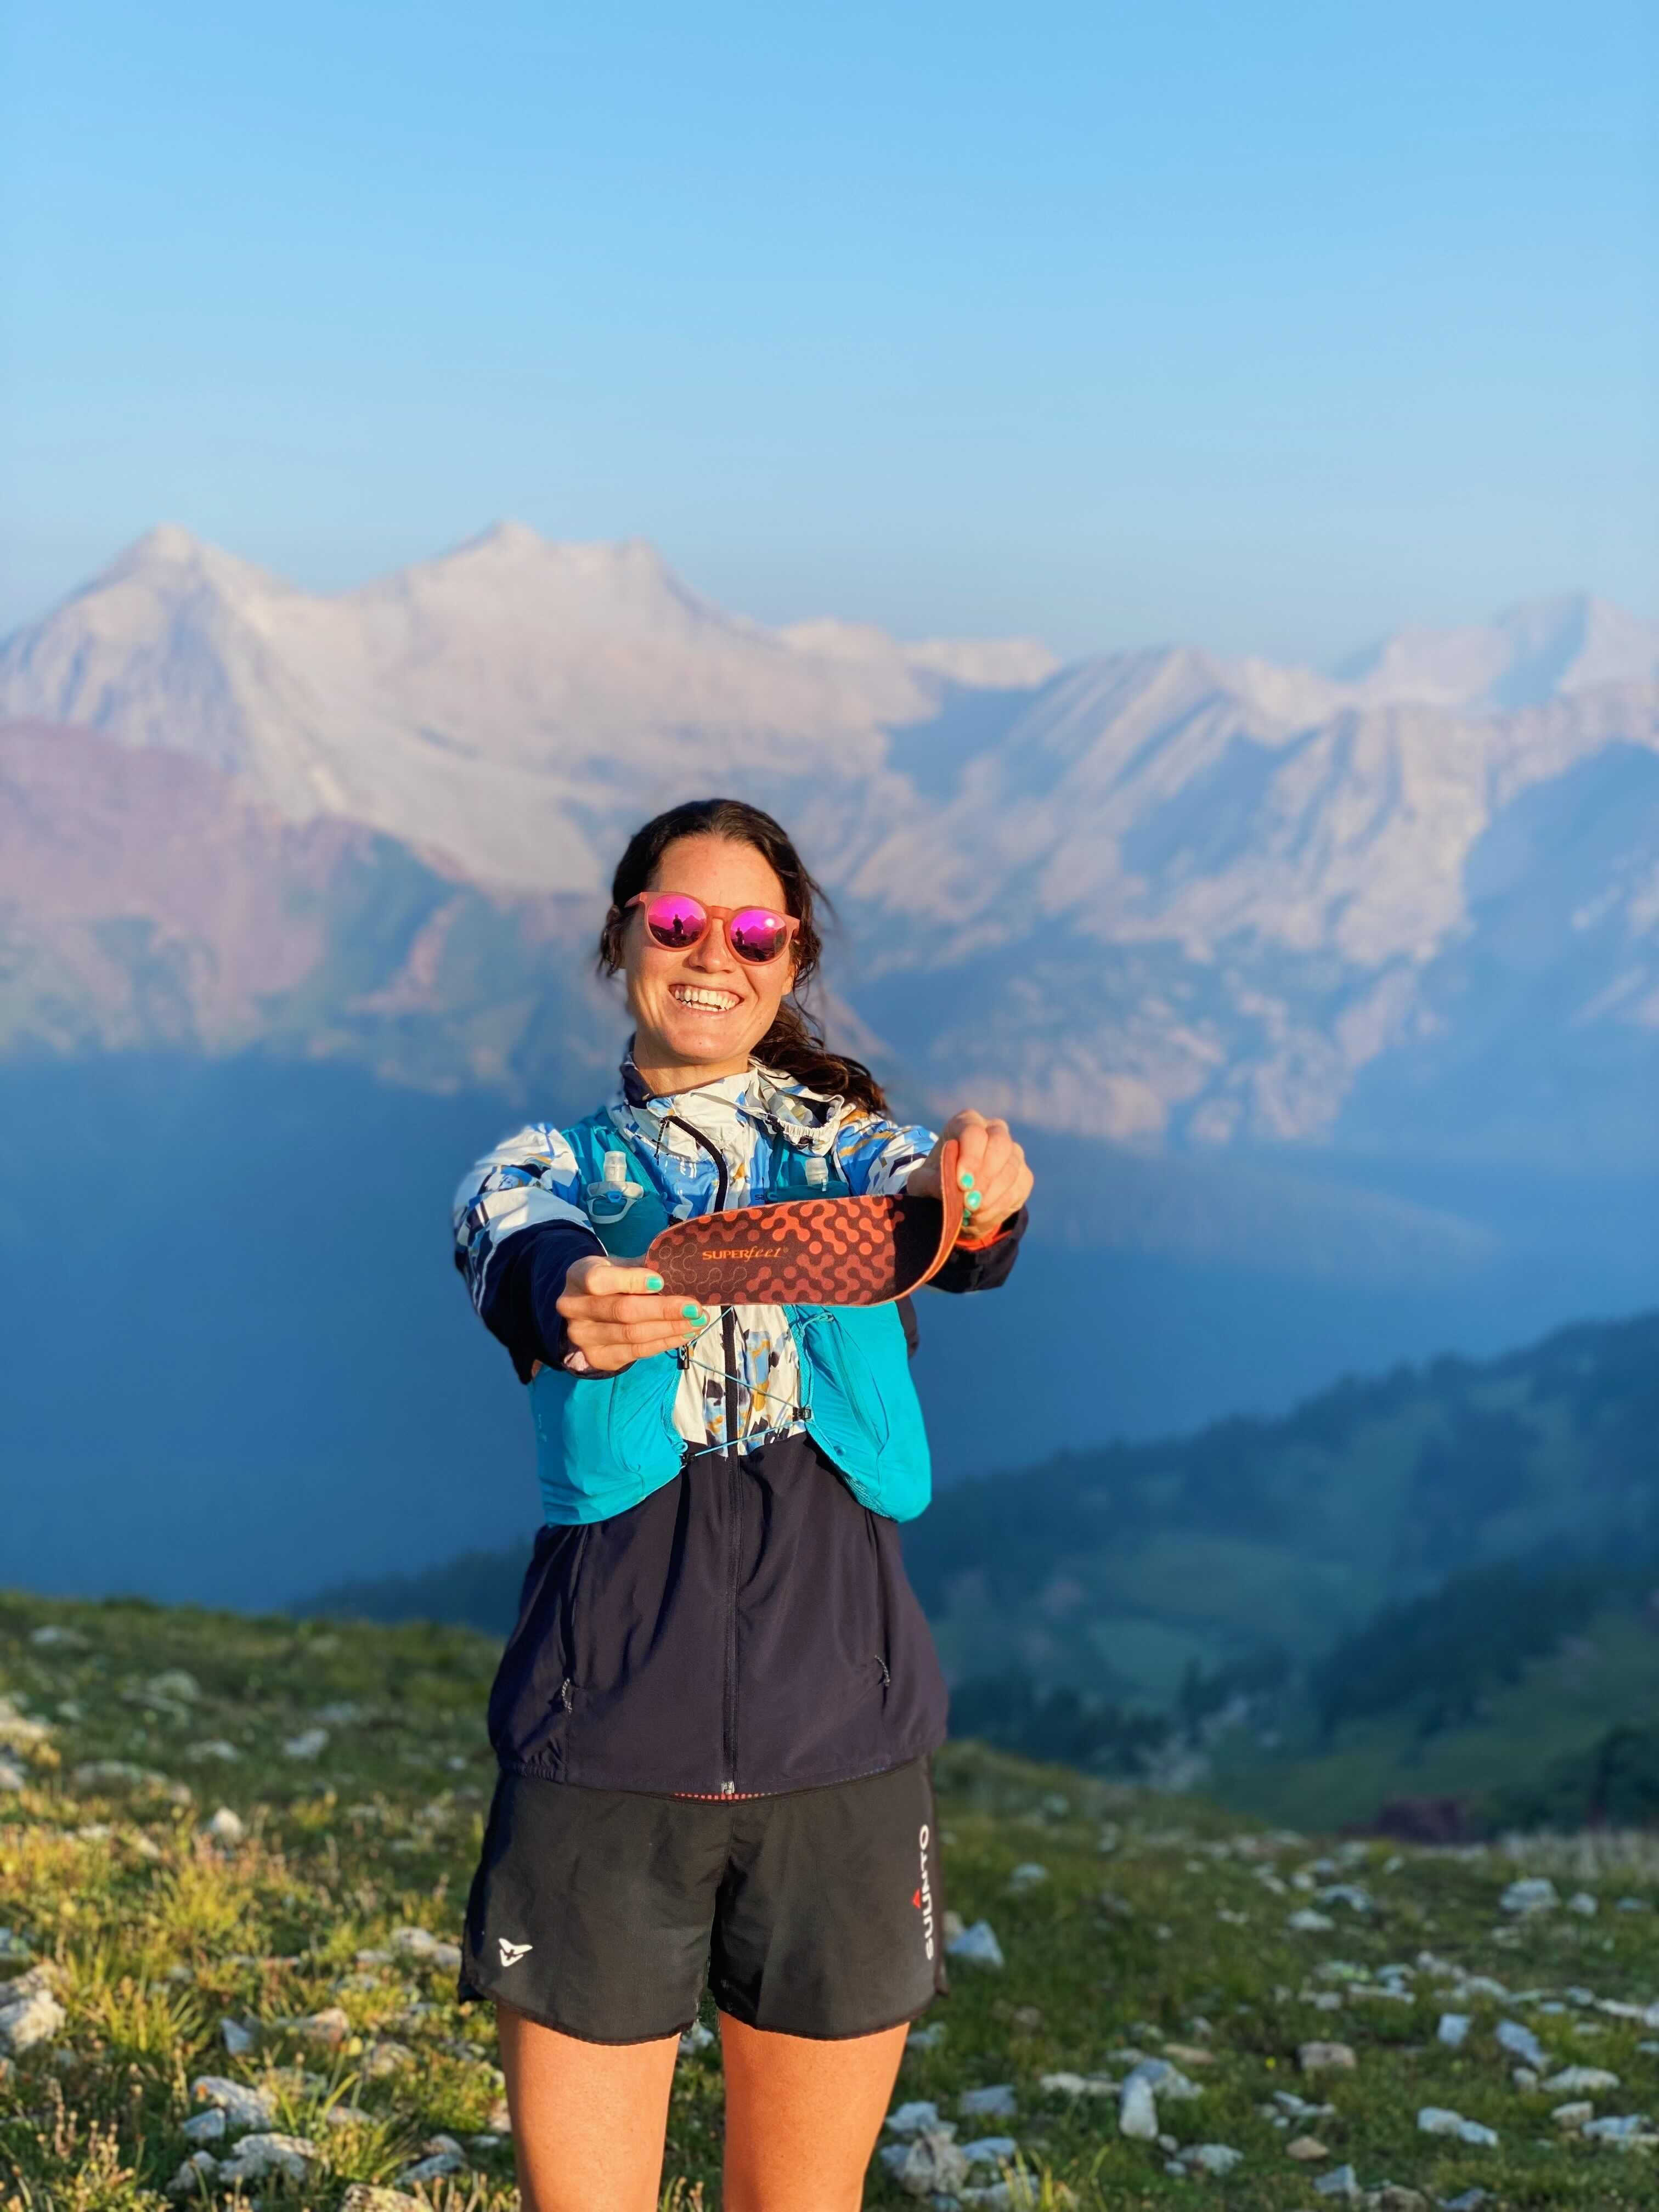 A trail runner holds out a Superfeet ADAPT Running insole in front of a stunning mountain backdrop